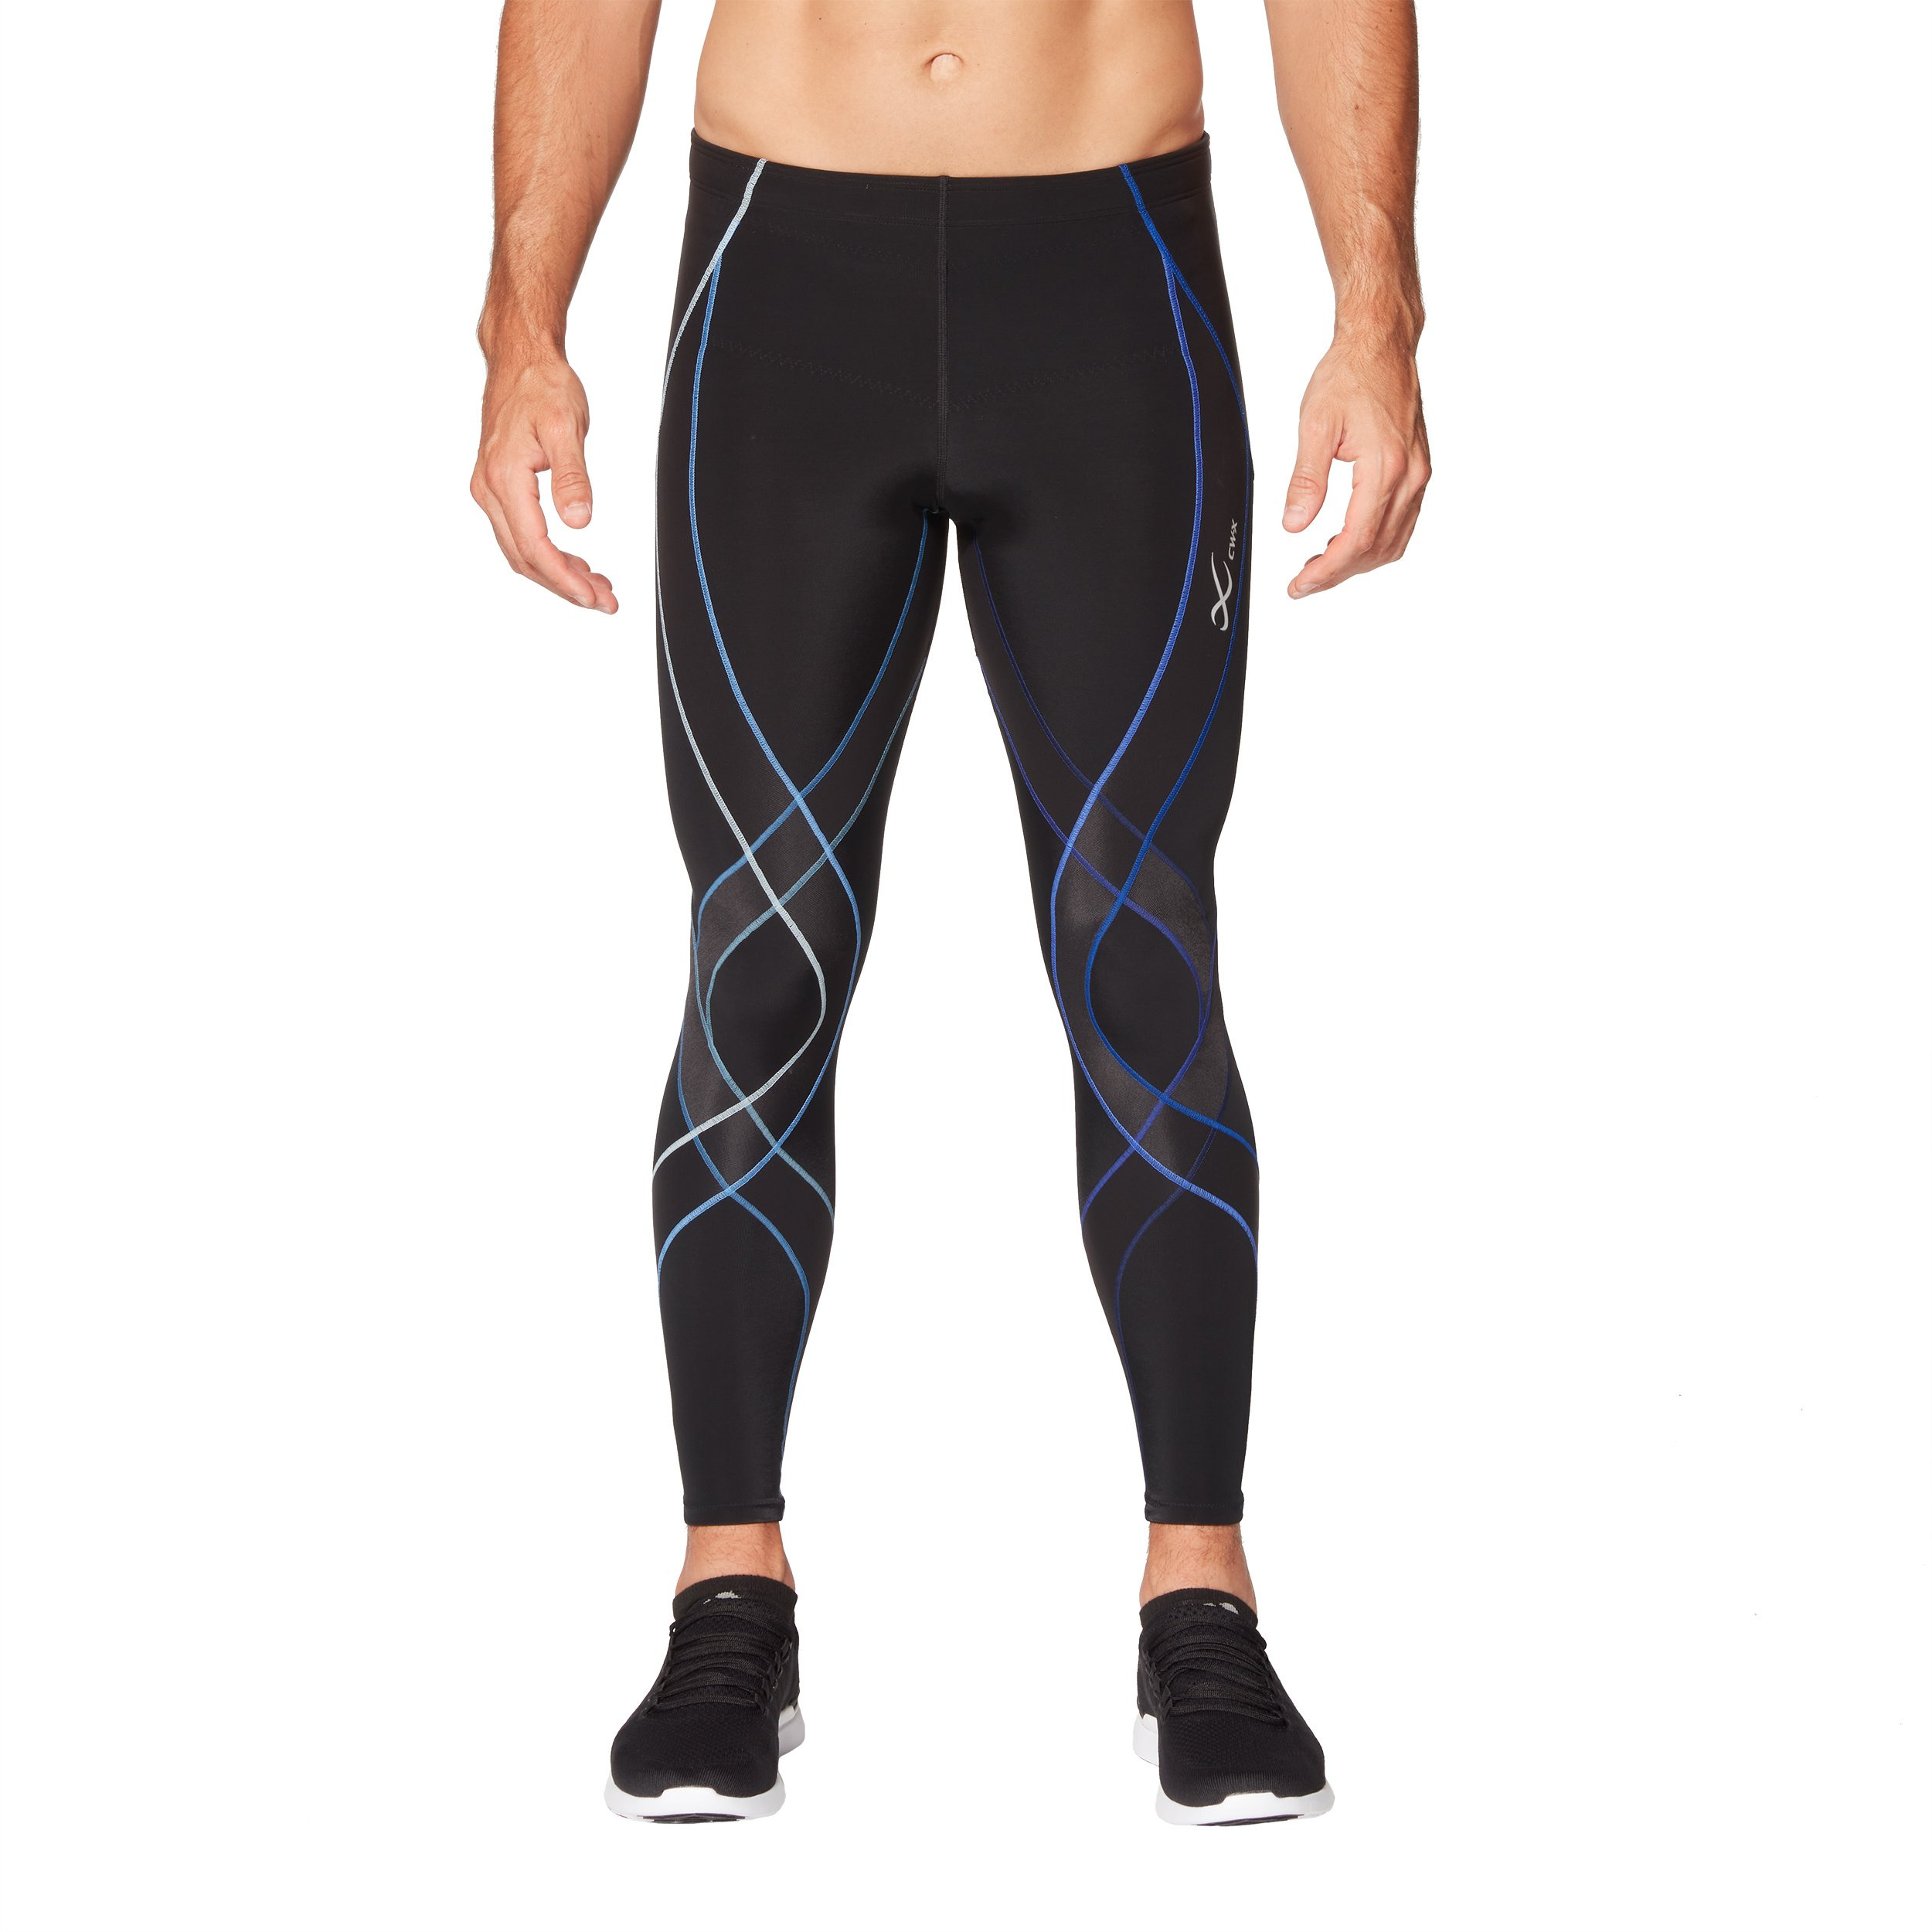 CW-X Endurance Generator Tights (Black/Blue Gradation) Men